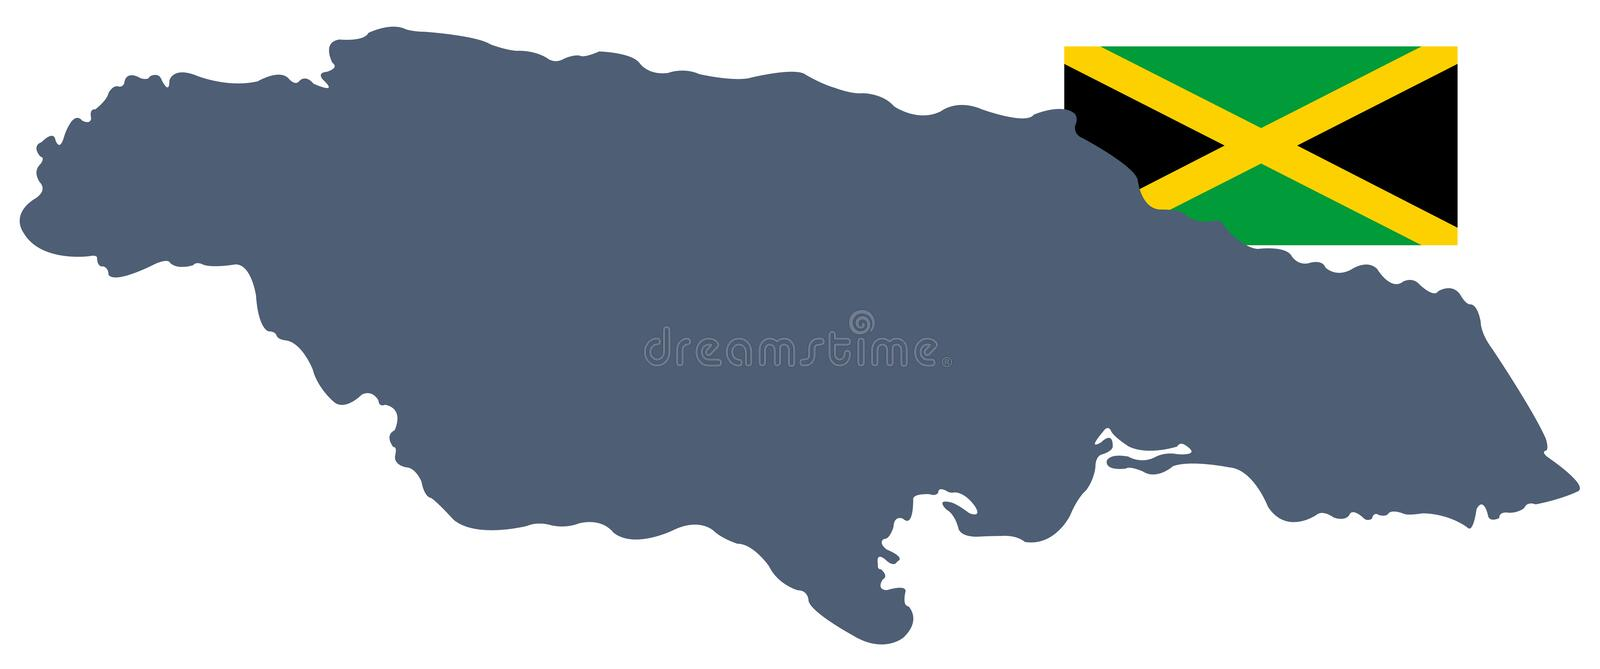 Jamaica flag and map - island country situated in the Caribbean Sea vector illustration